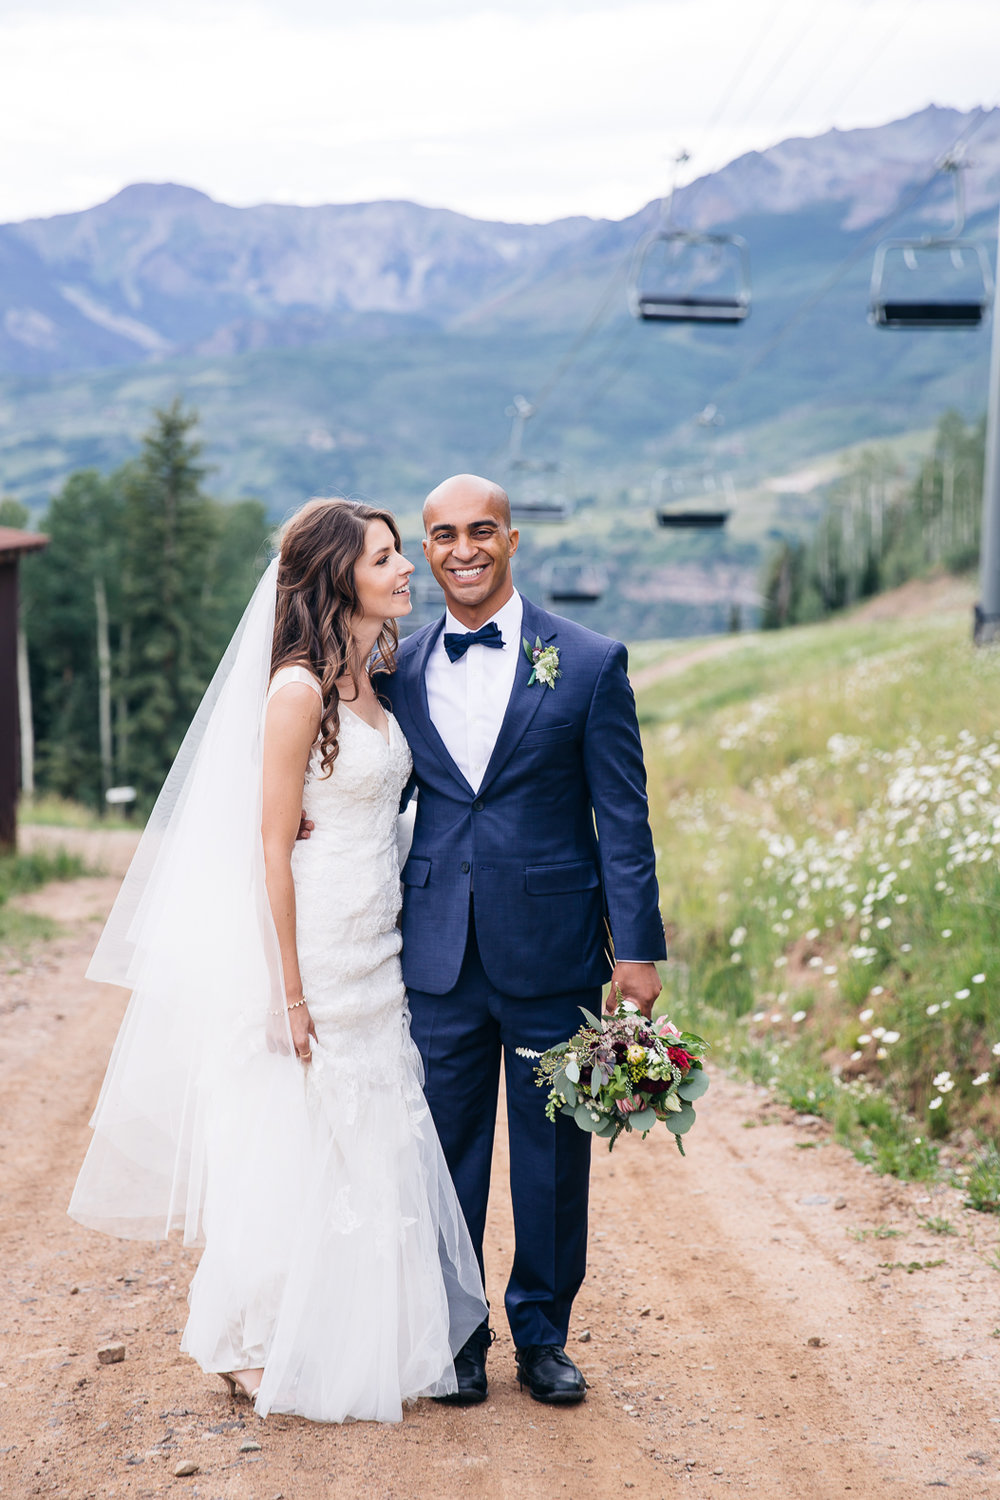 Abie Livesay Photography - Telluride Wedding Photographer - Gorrono Ranch Wedding - Brooke Chaz-773.jpg